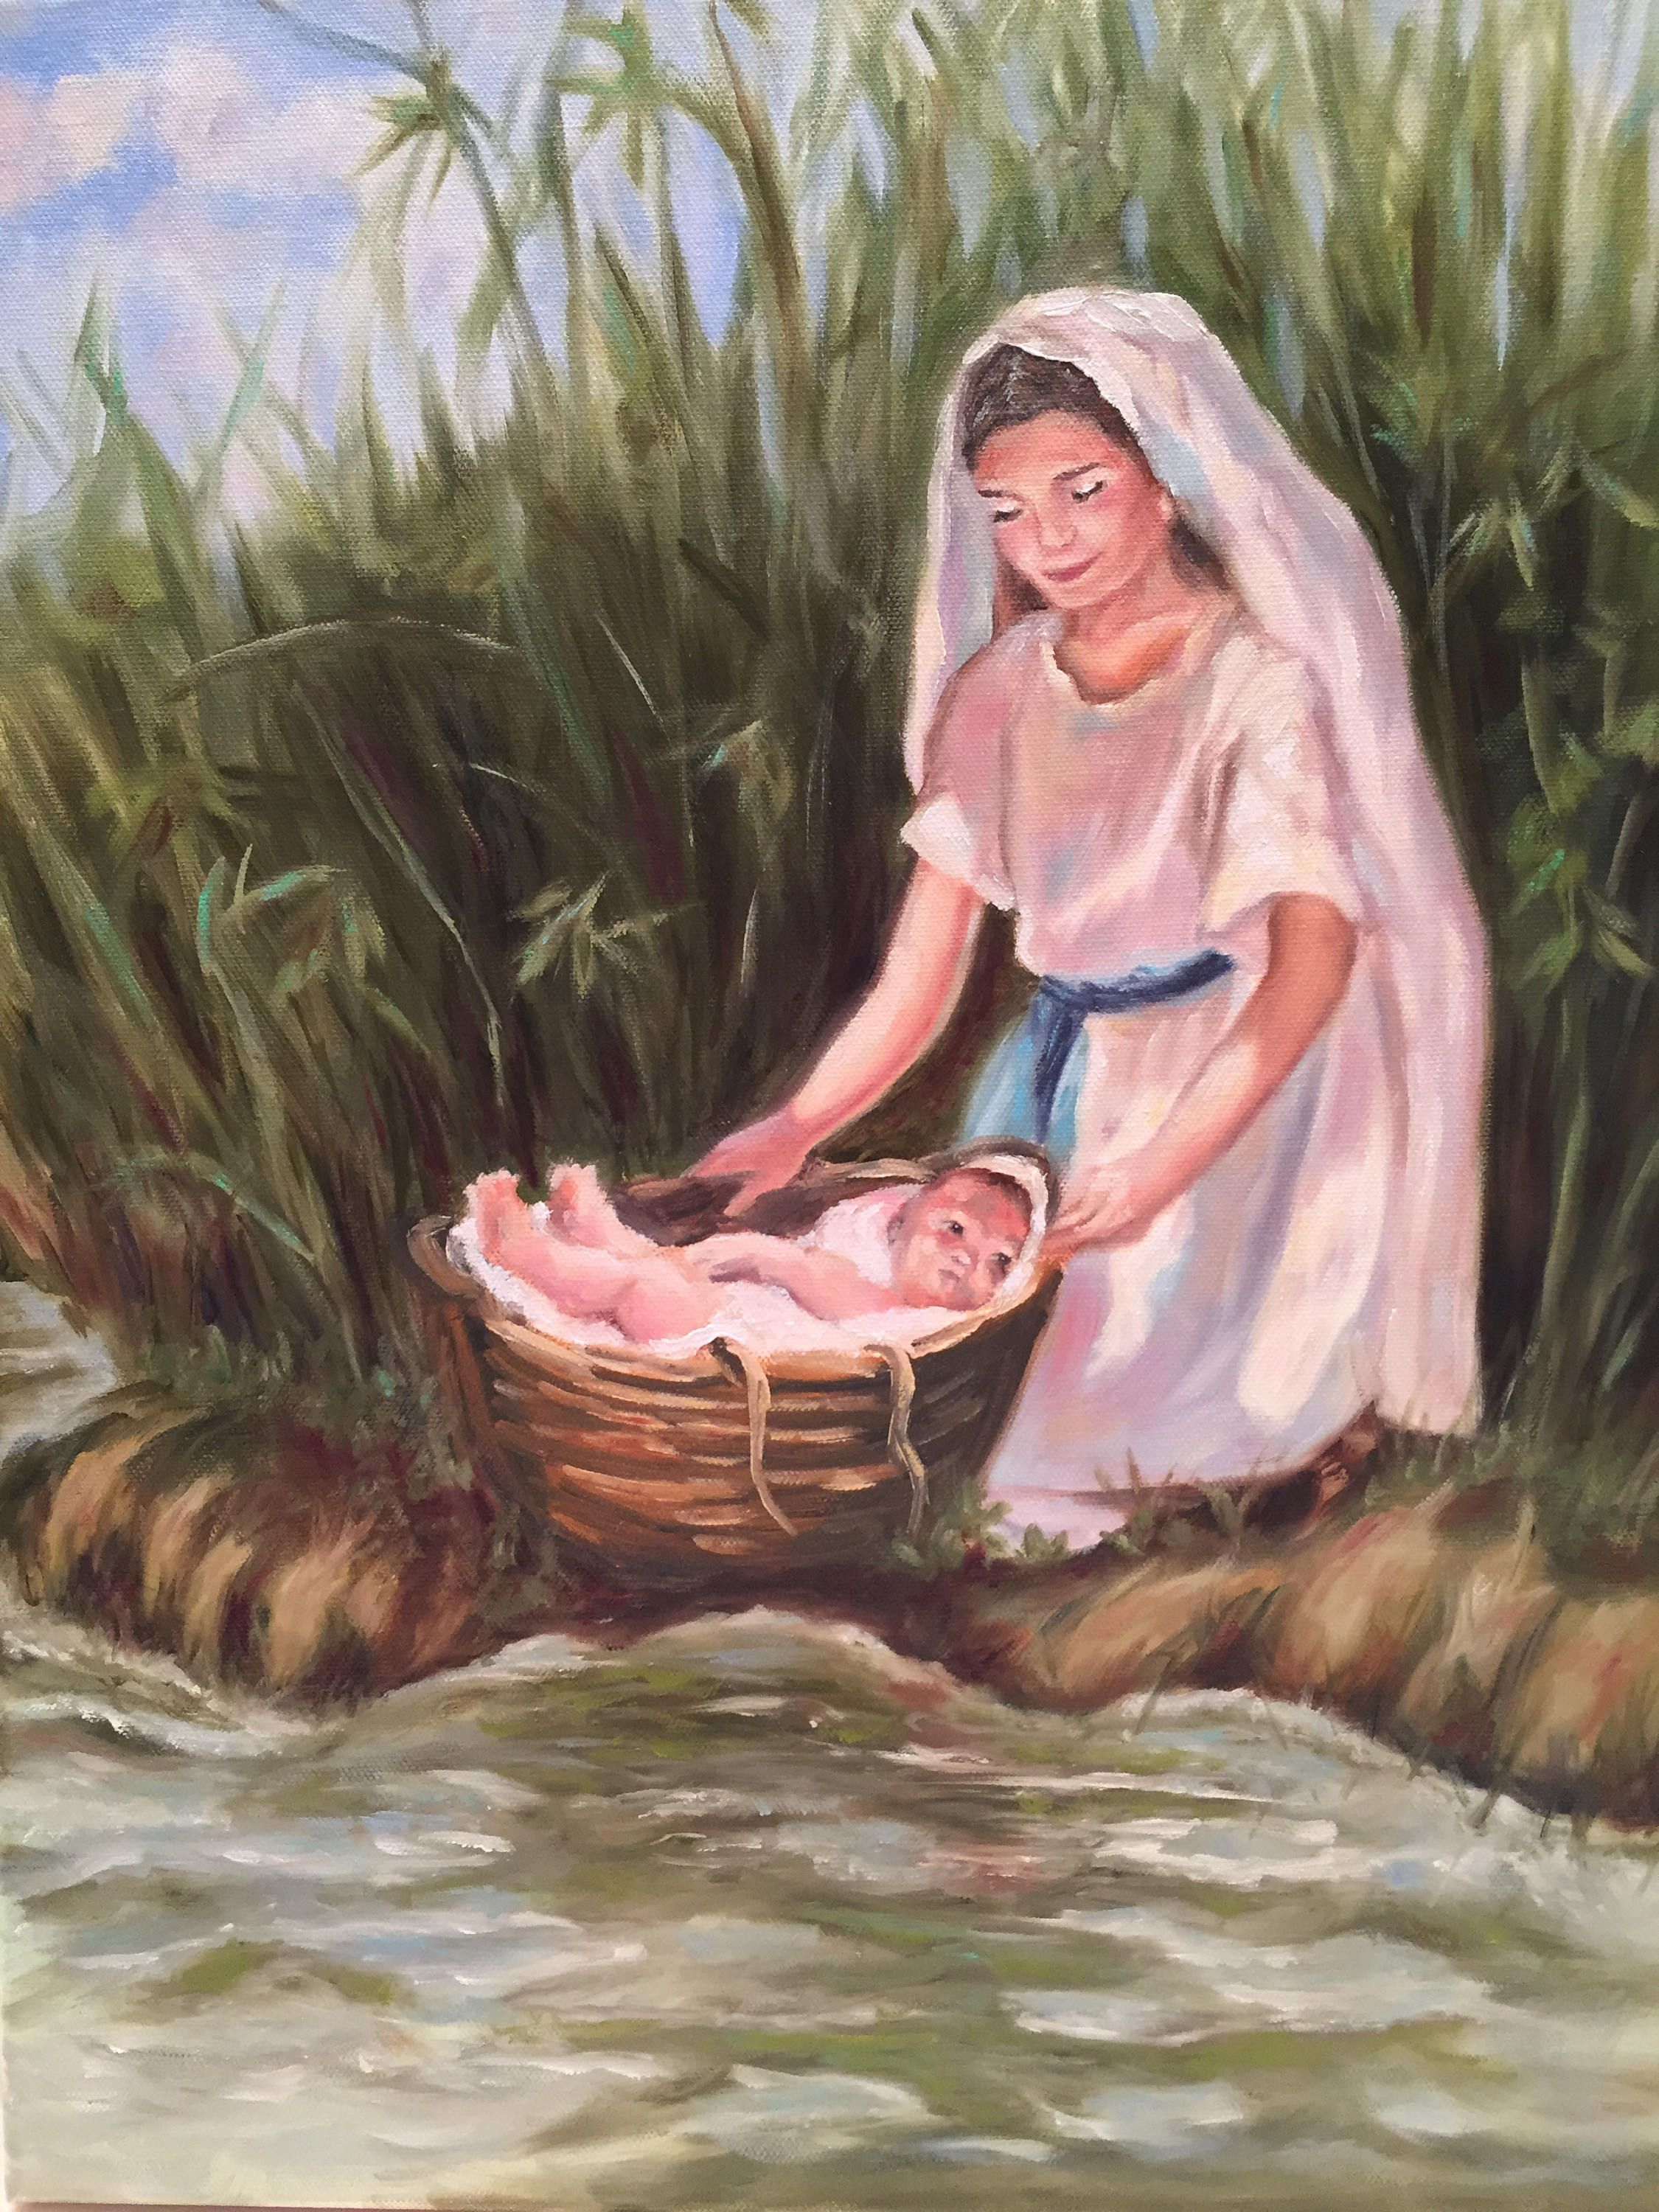 Moses And Miriam In The Bullrushes Biblical Art Baby In A Basket Sunday School Bible Story